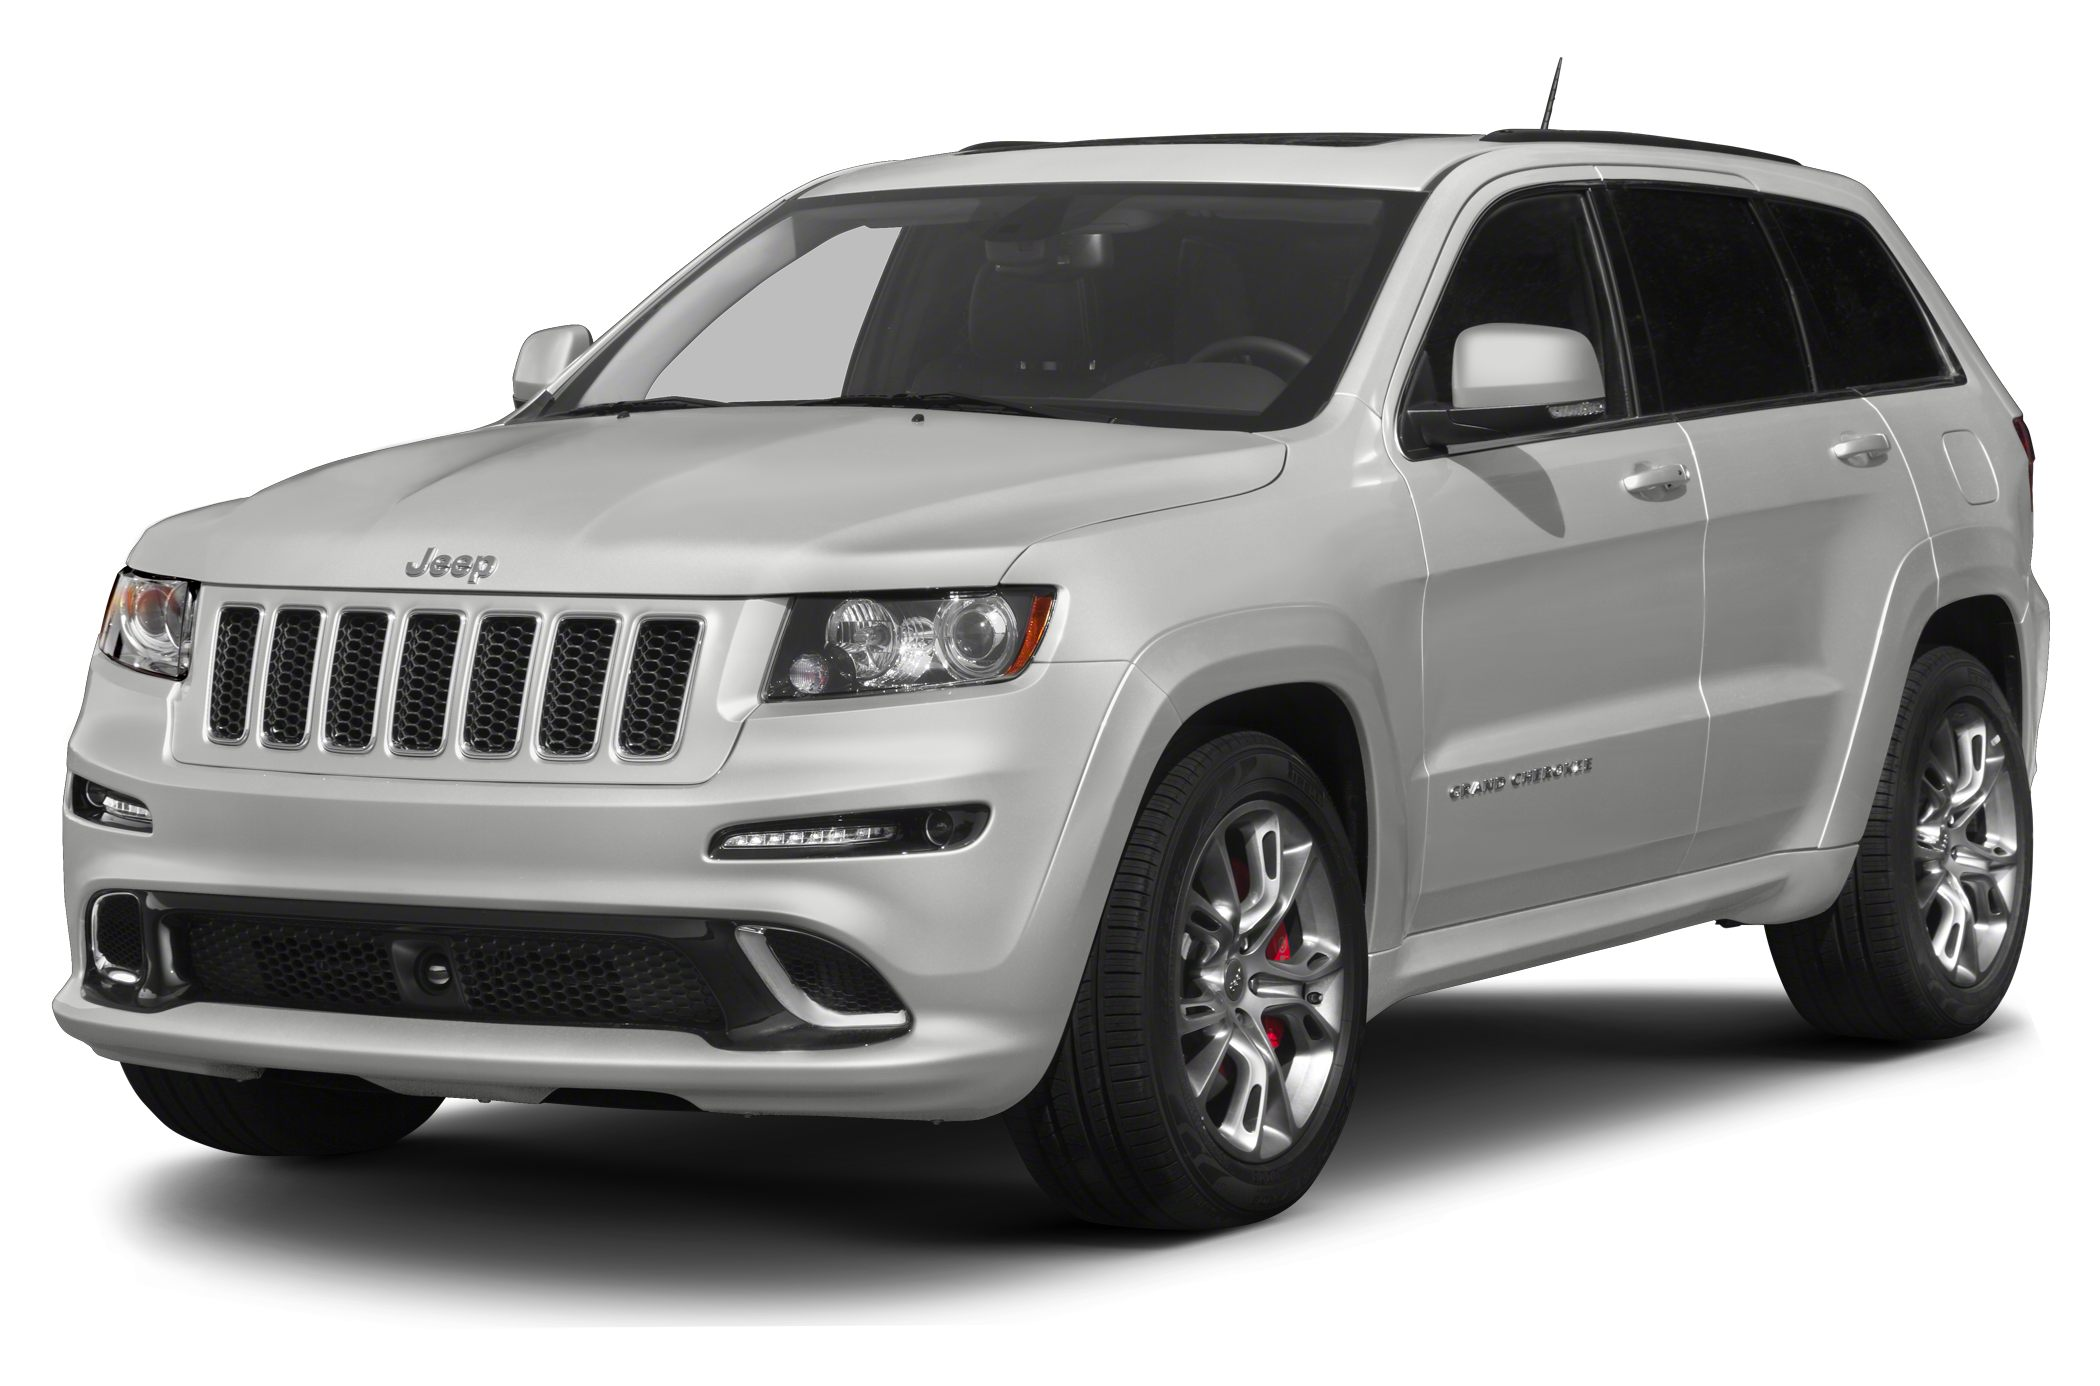 2012 Jeep Grand Cherokee SRT8 SUV for sale in Wilmington for $38,500 with 81,650 miles